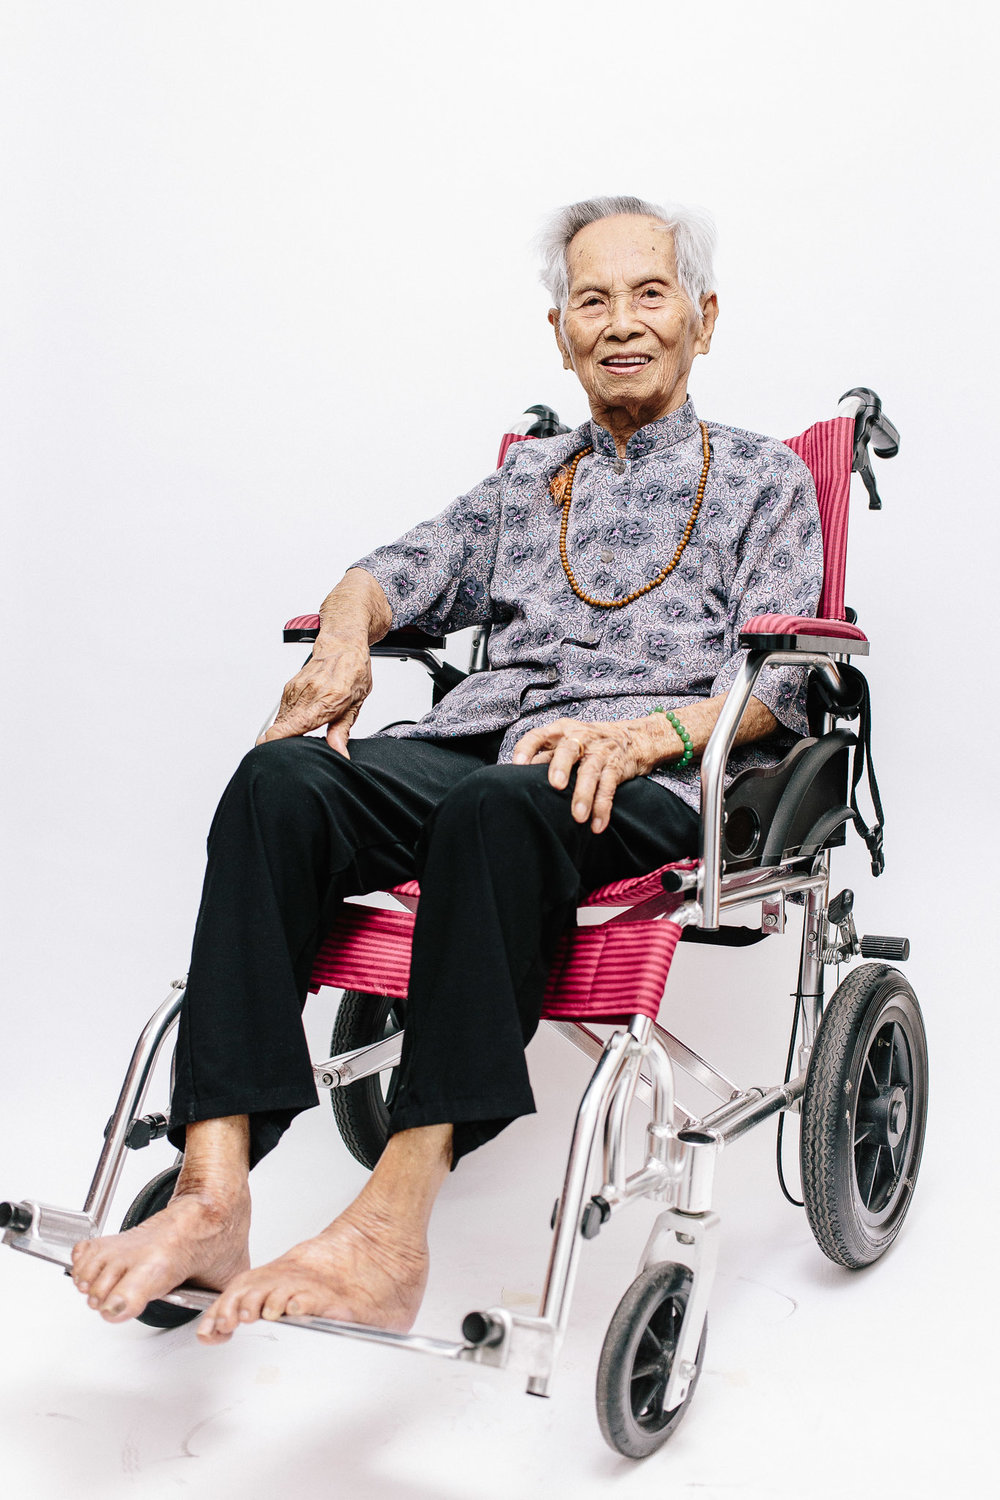 singapore-photographer-hospice-care-013.jpg